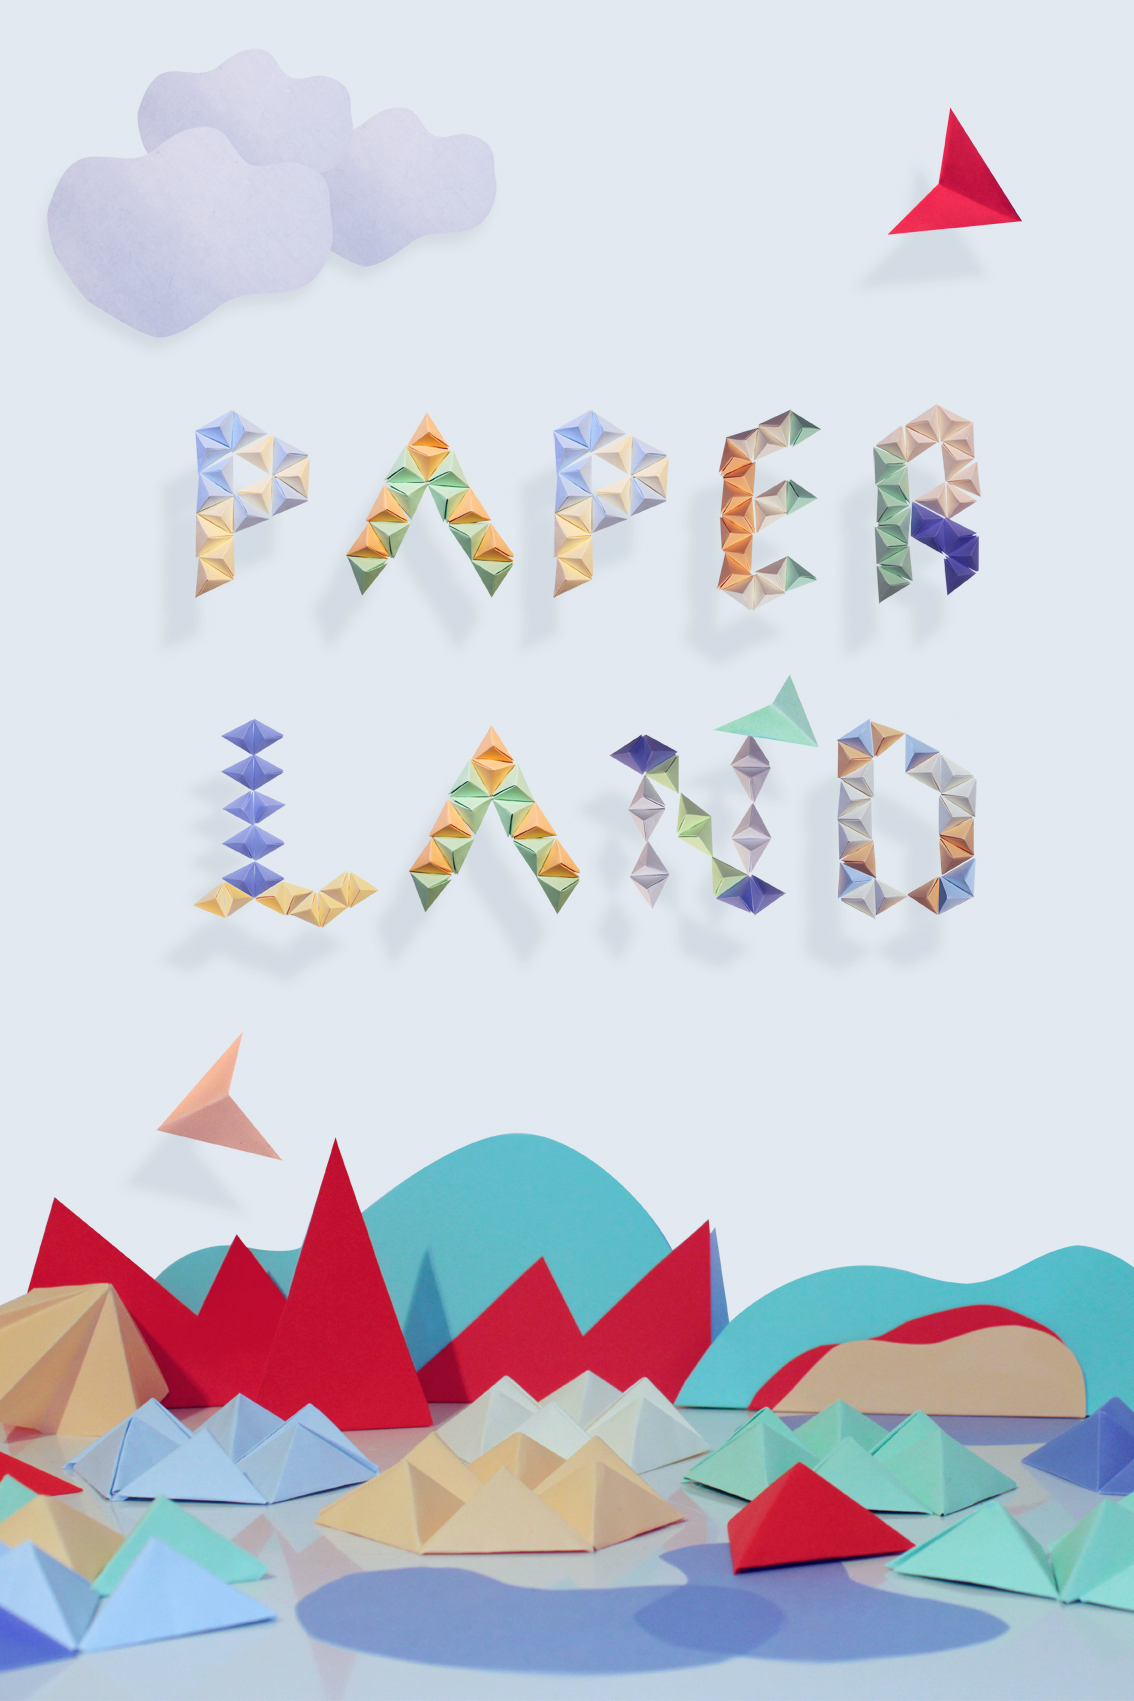 Paper land by Julie Jup in 60+ Examples of Creative Typography